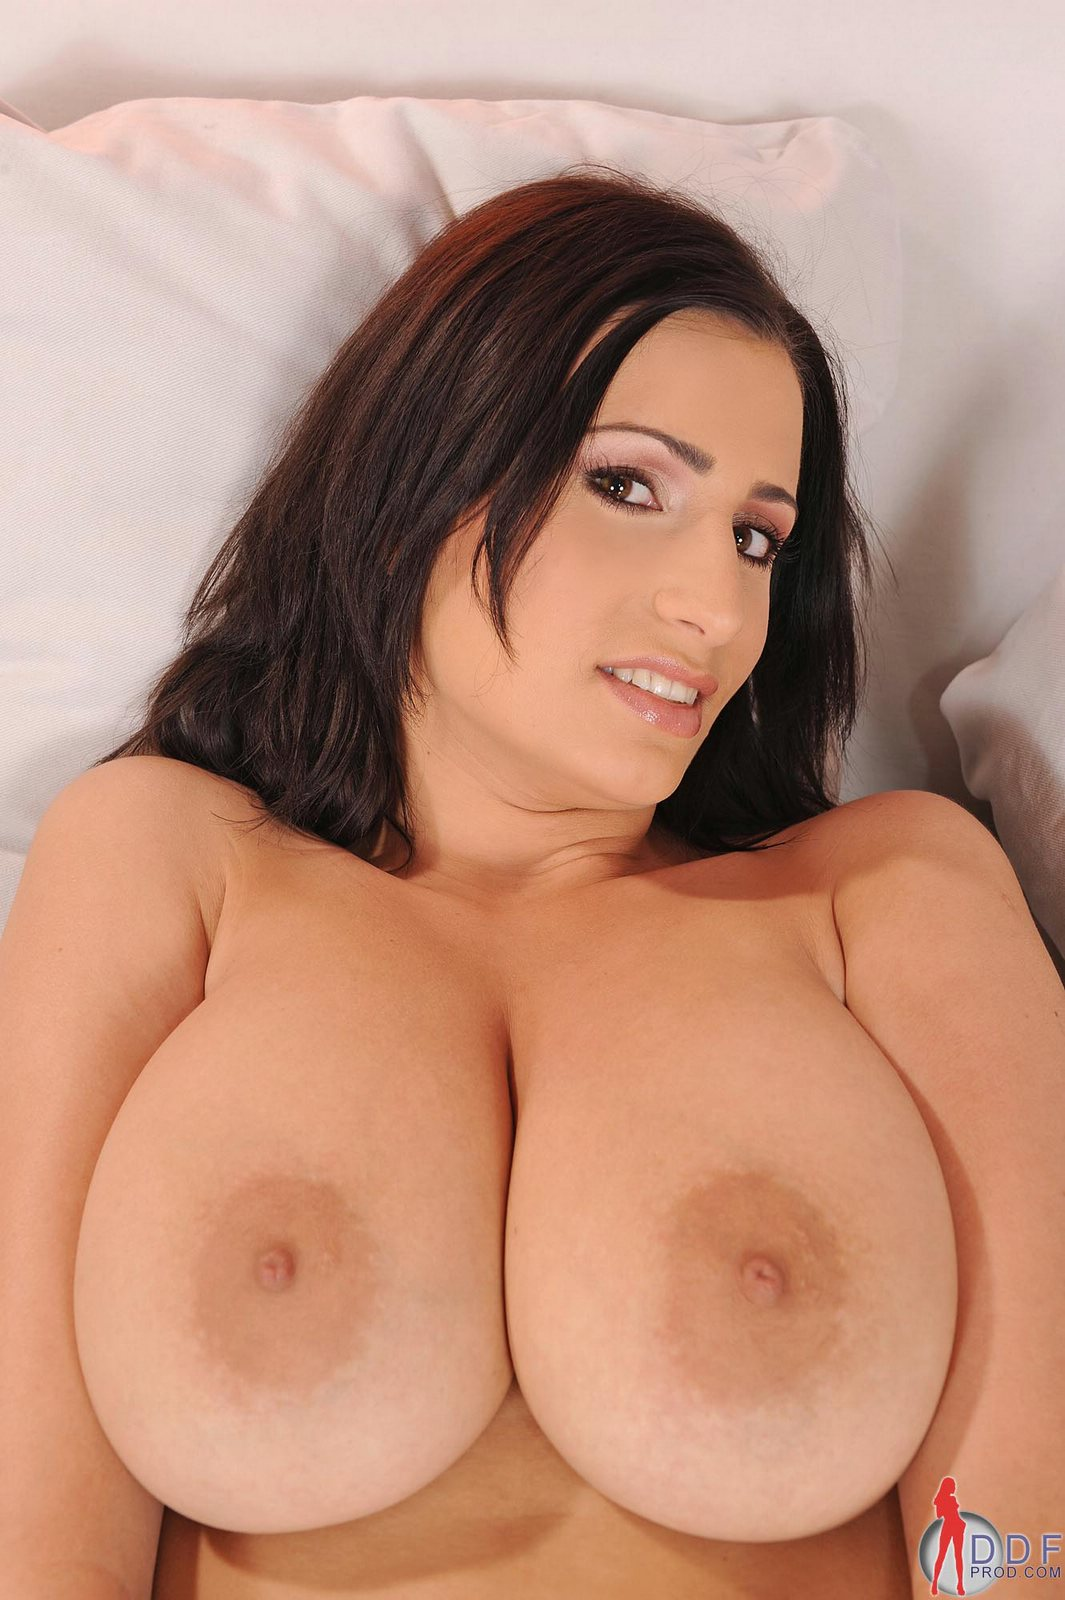 Sensual Jane Showing Off Her Natural Huge Tits - My -2300